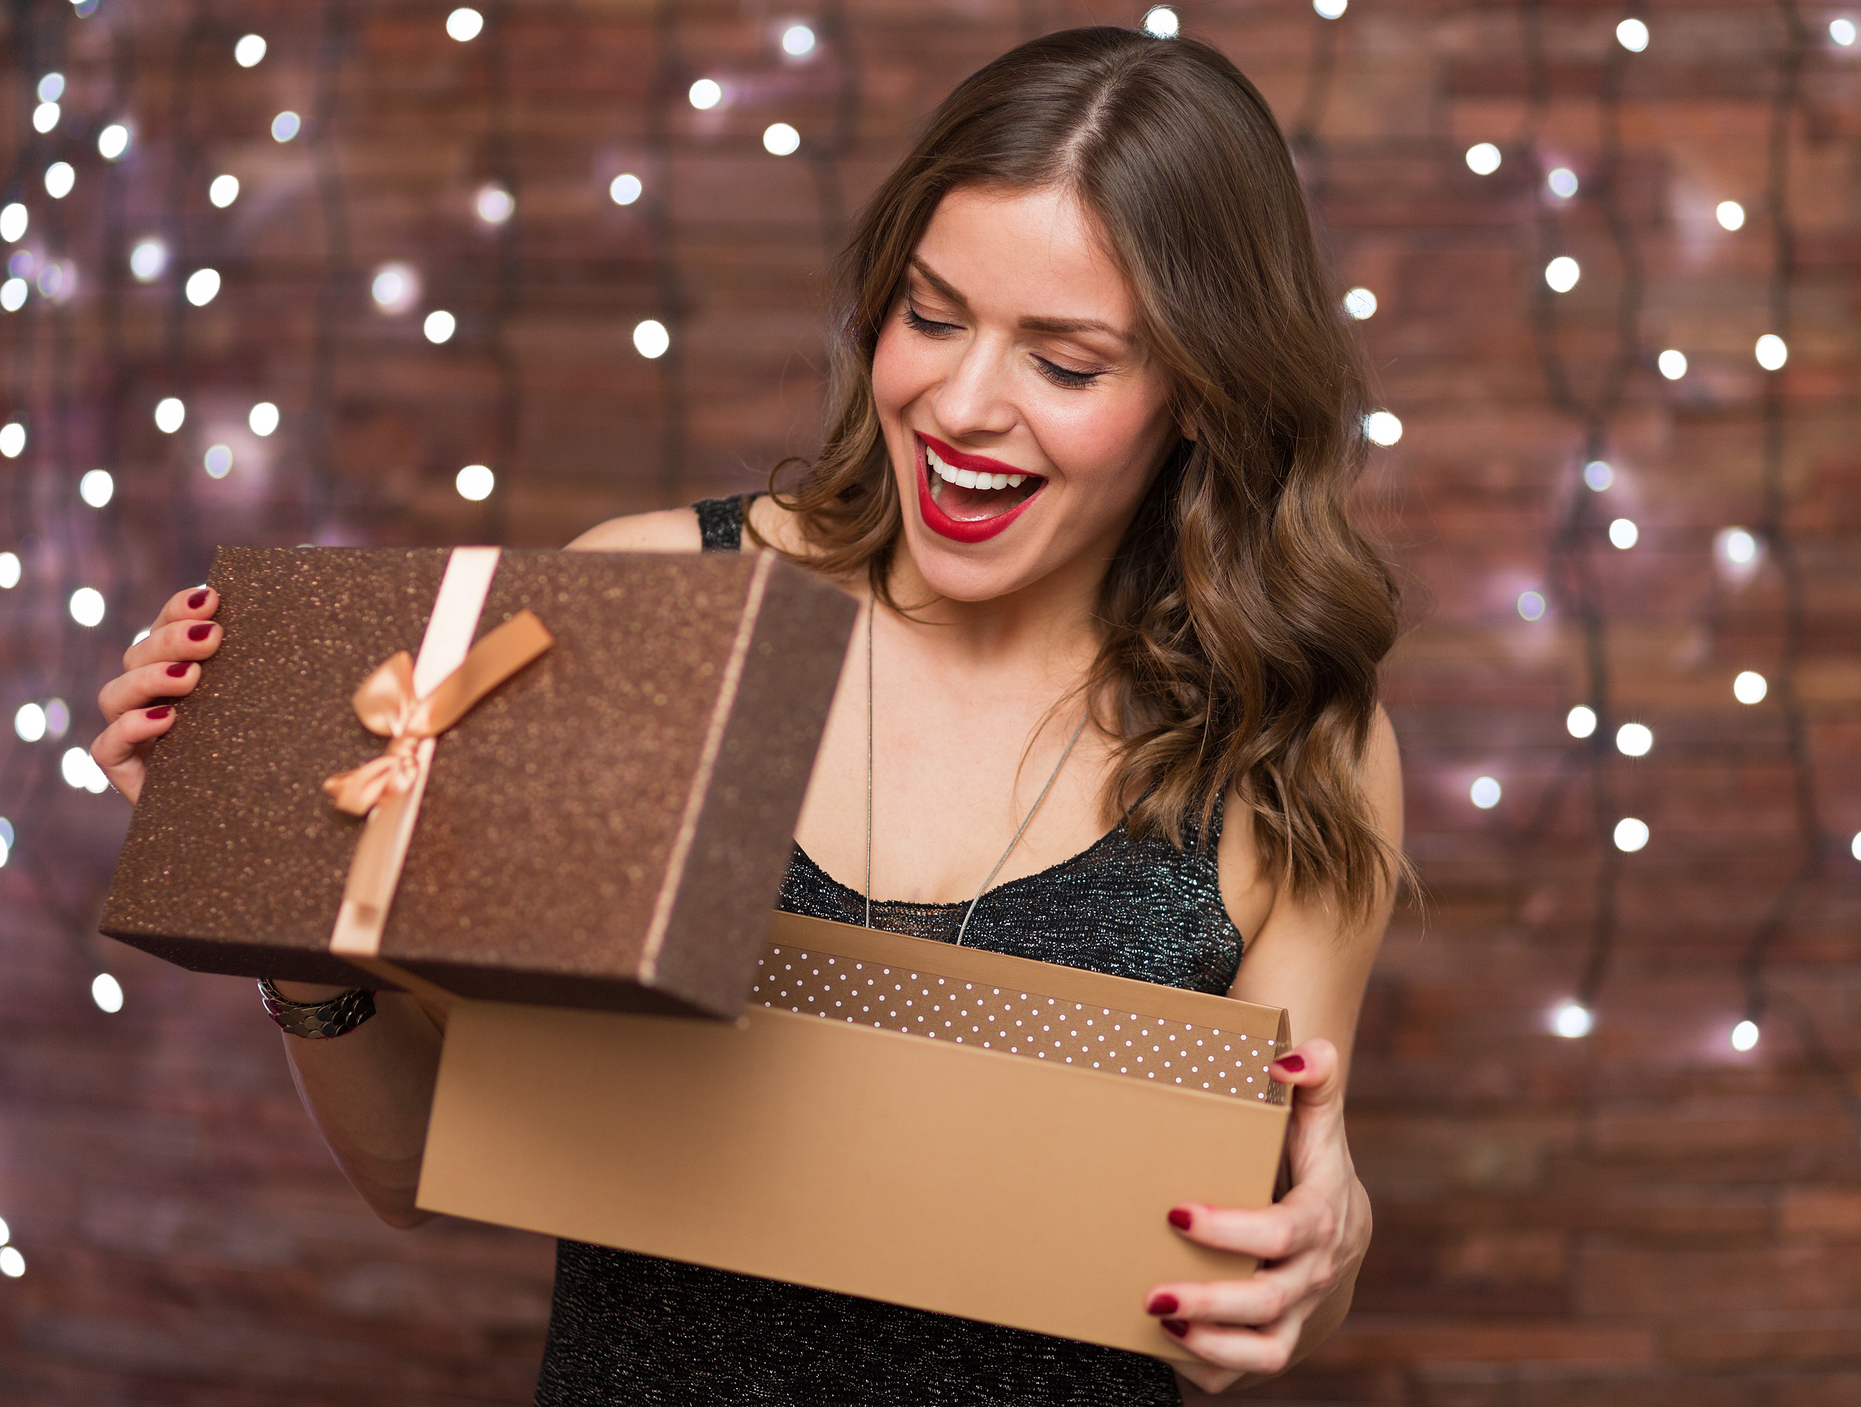 8 Awesome Holiday Gifts For Women